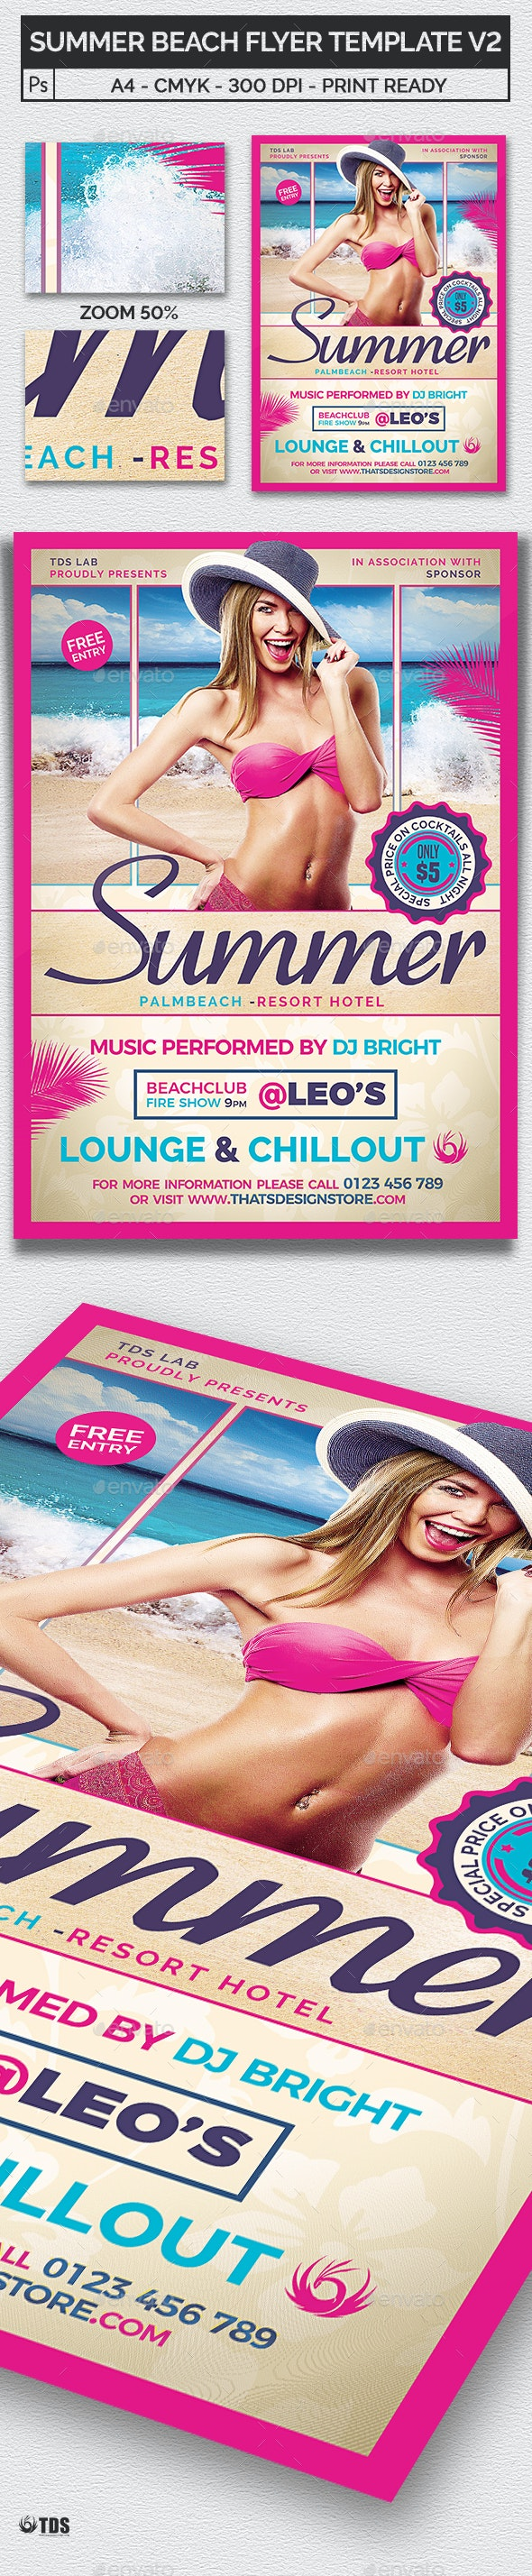 Summer Beach Flyer Template V2 - Clubs & Parties Events